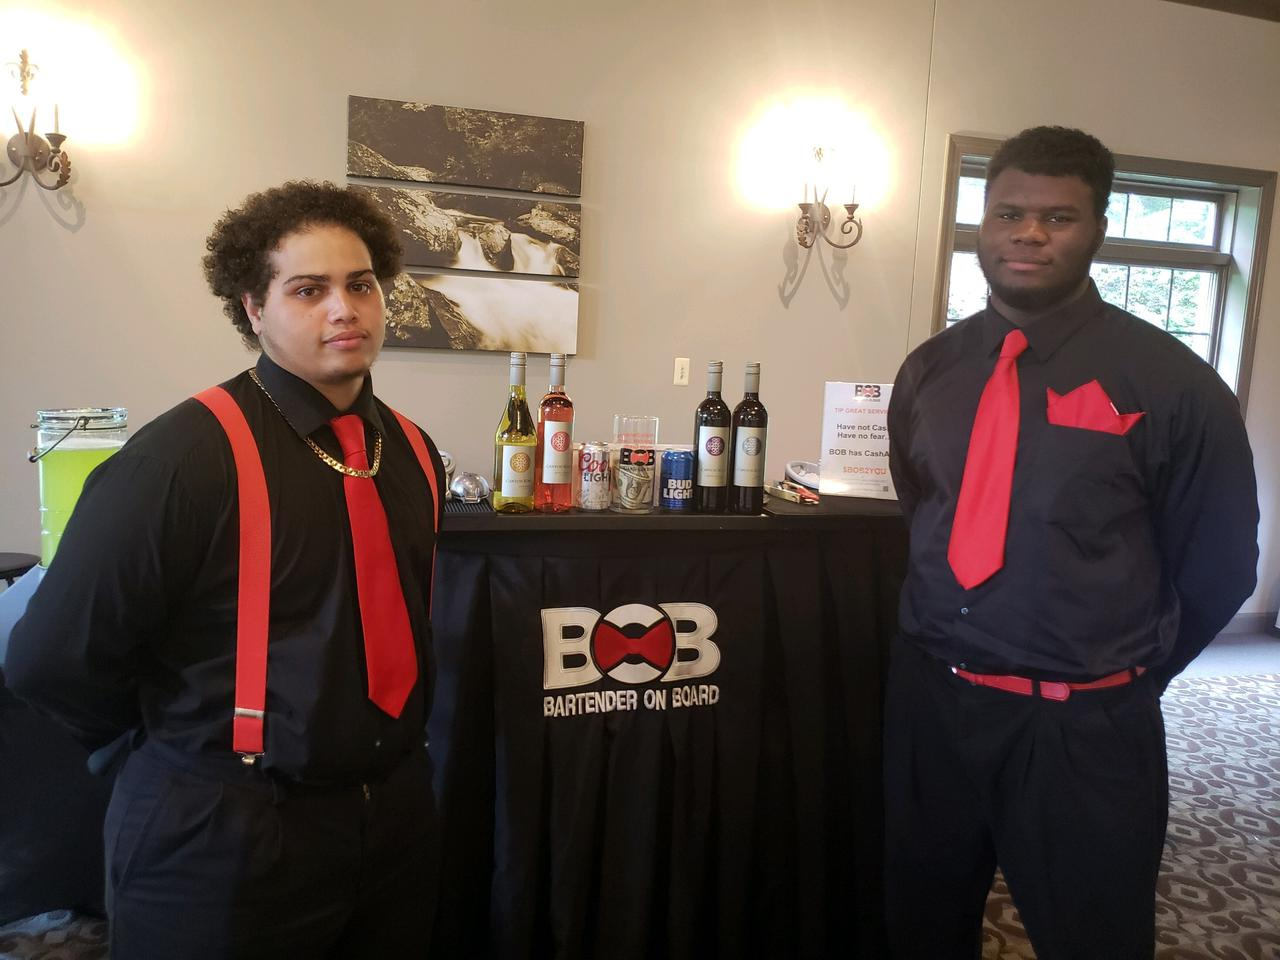 two bartenders posing in front of a mobile bar